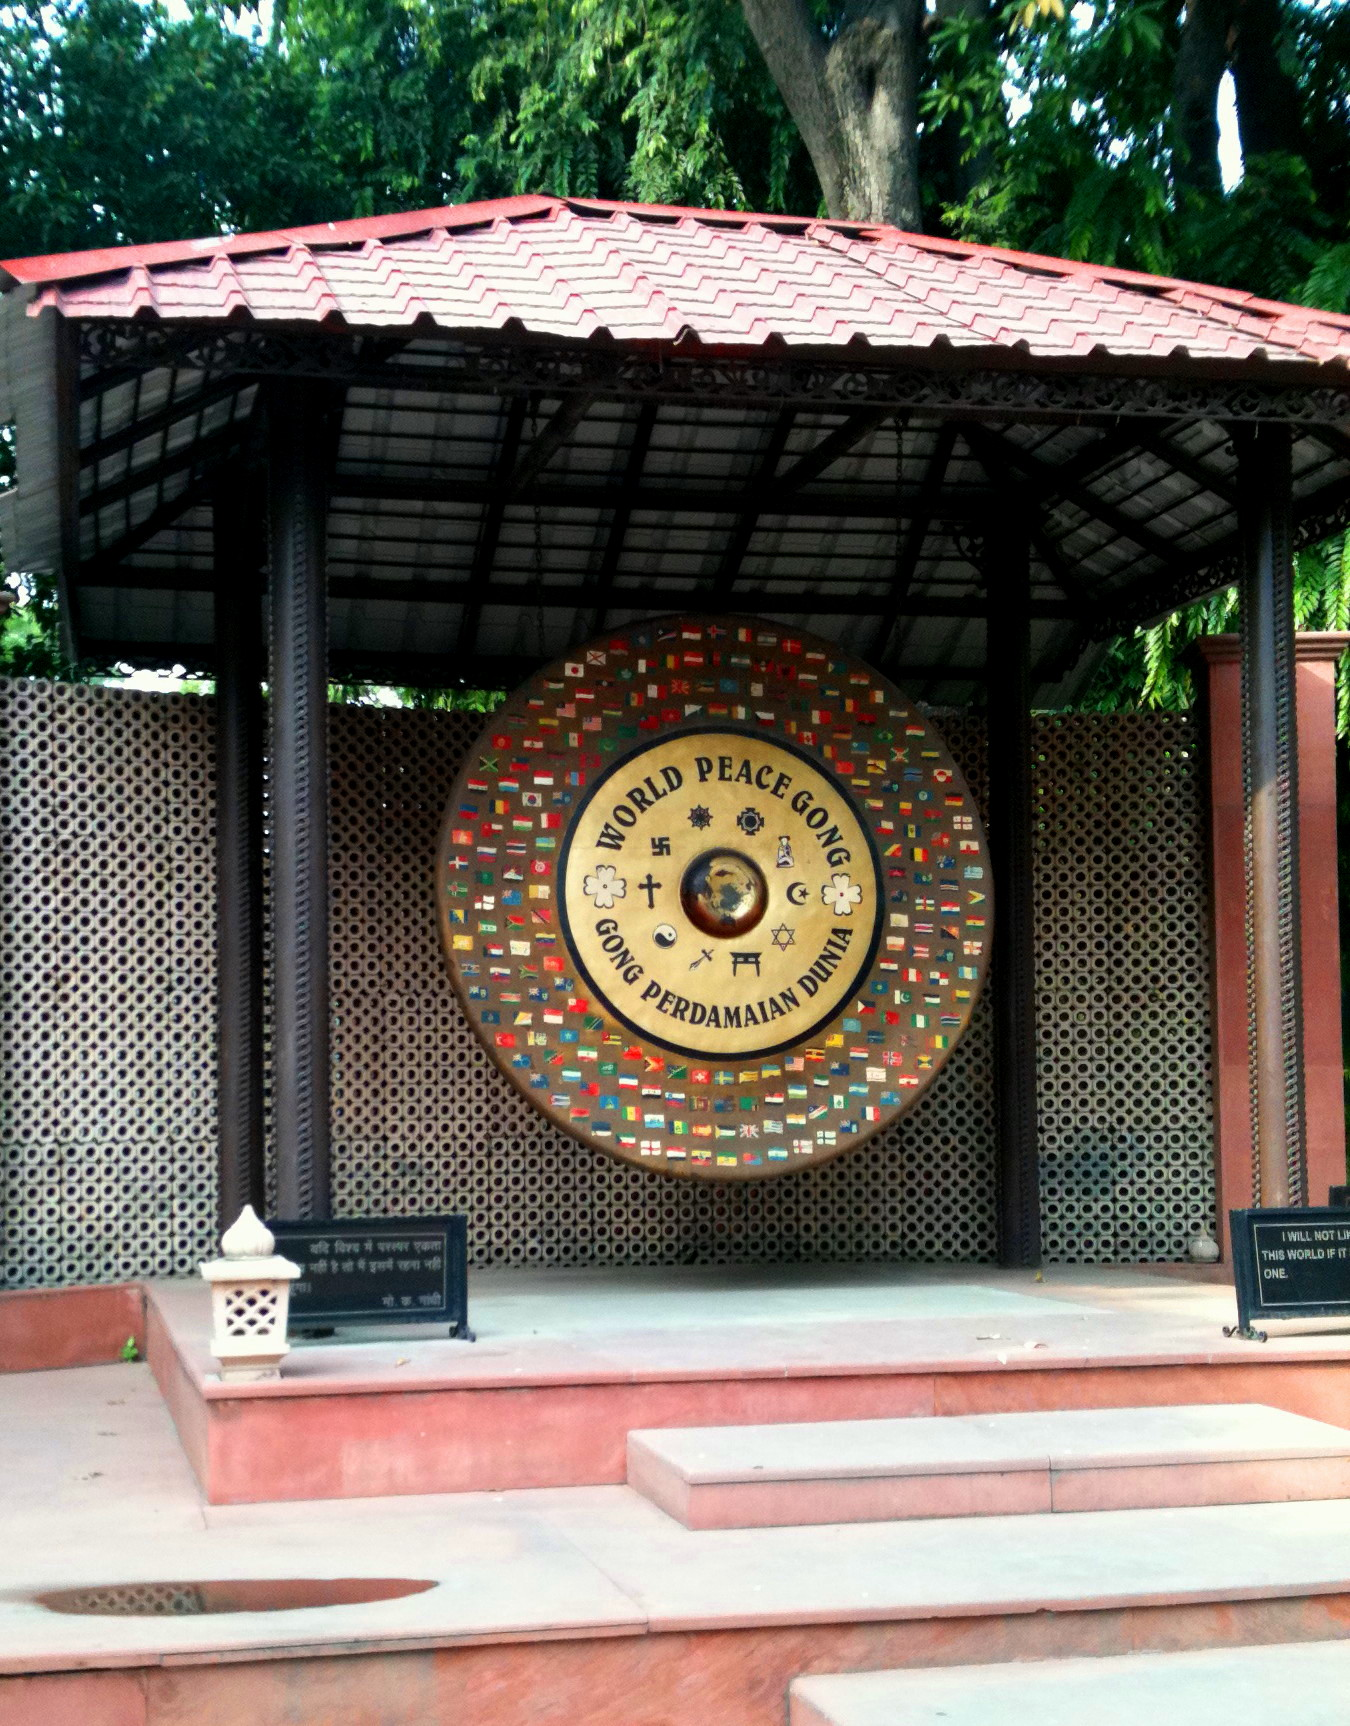 World Peace Gong at Gandhi Memorial Museum, or National Gandhi Museum in New Delhi, India